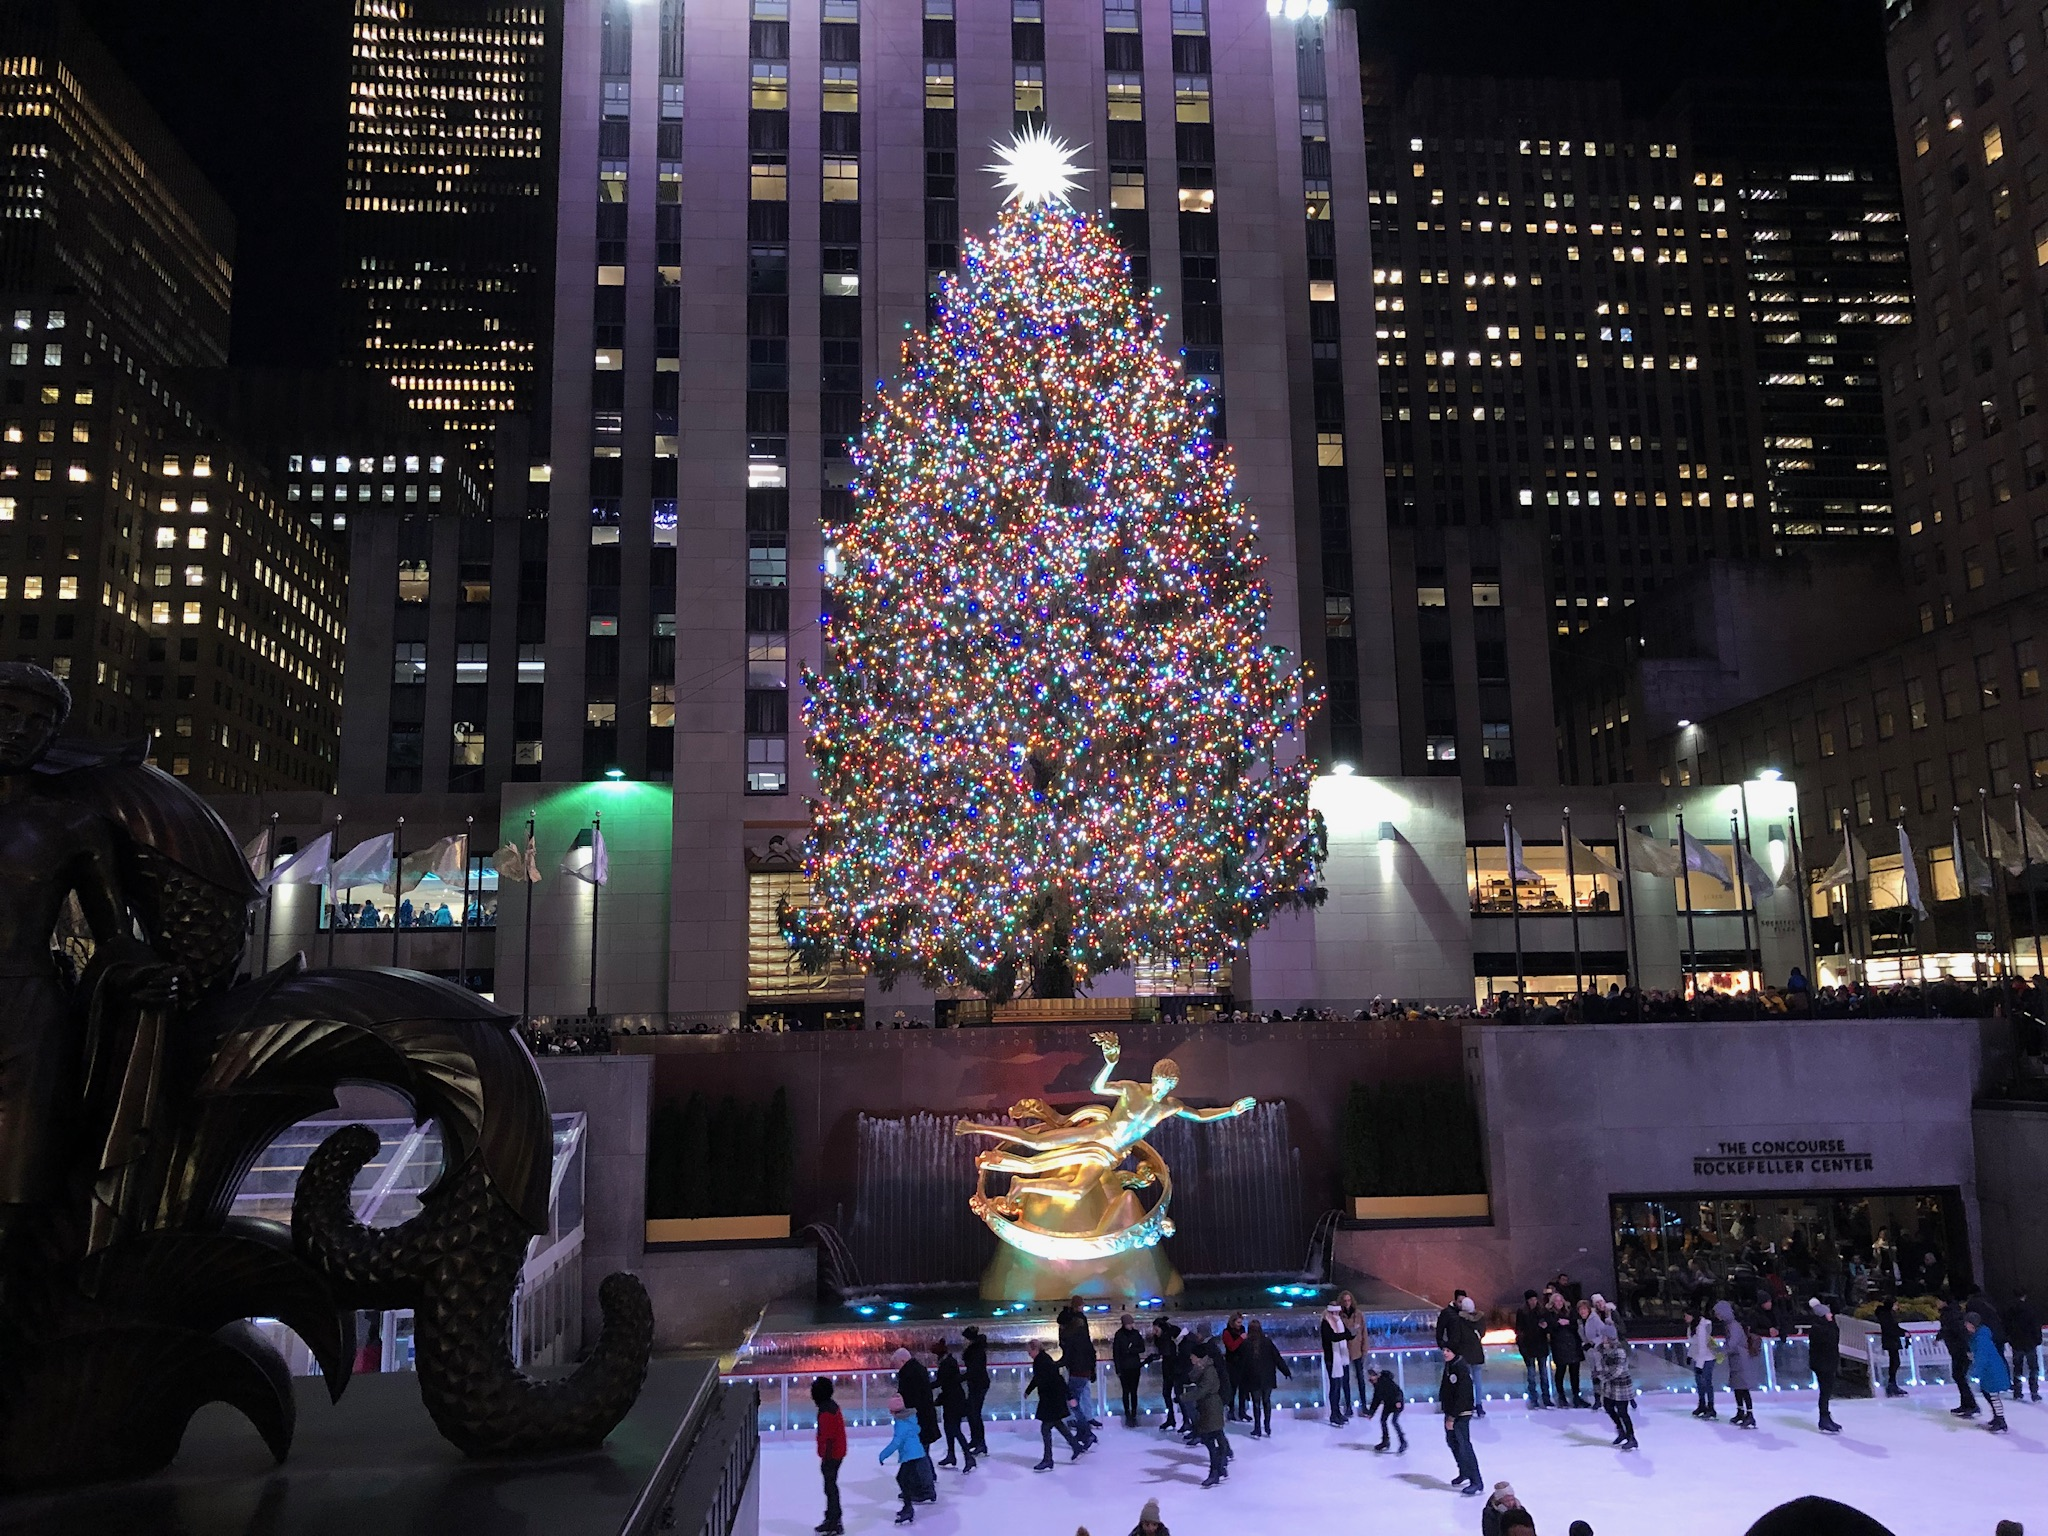 Rockefeller Plaza Christmas Tree 2020 Rockefeller Center's Christmas Tree to Return Without the Crowds